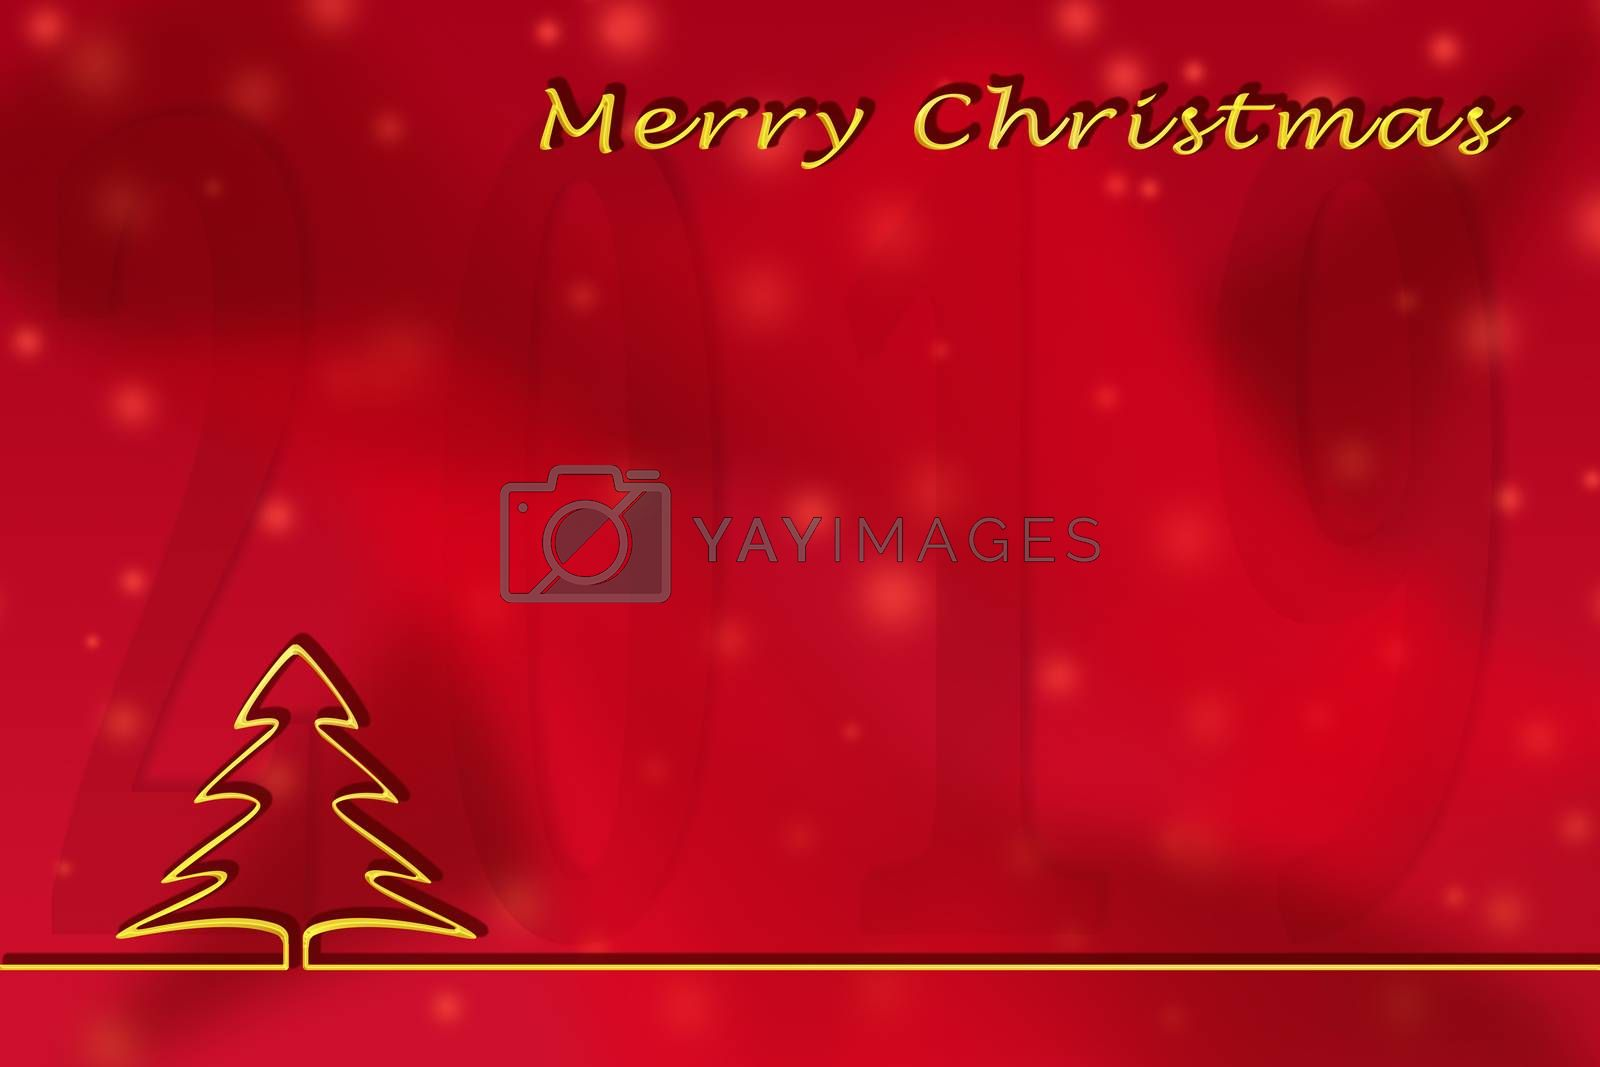 Illustration. Christmas greetings 2019 template on a red background with a Golden outline of a Christmas tree